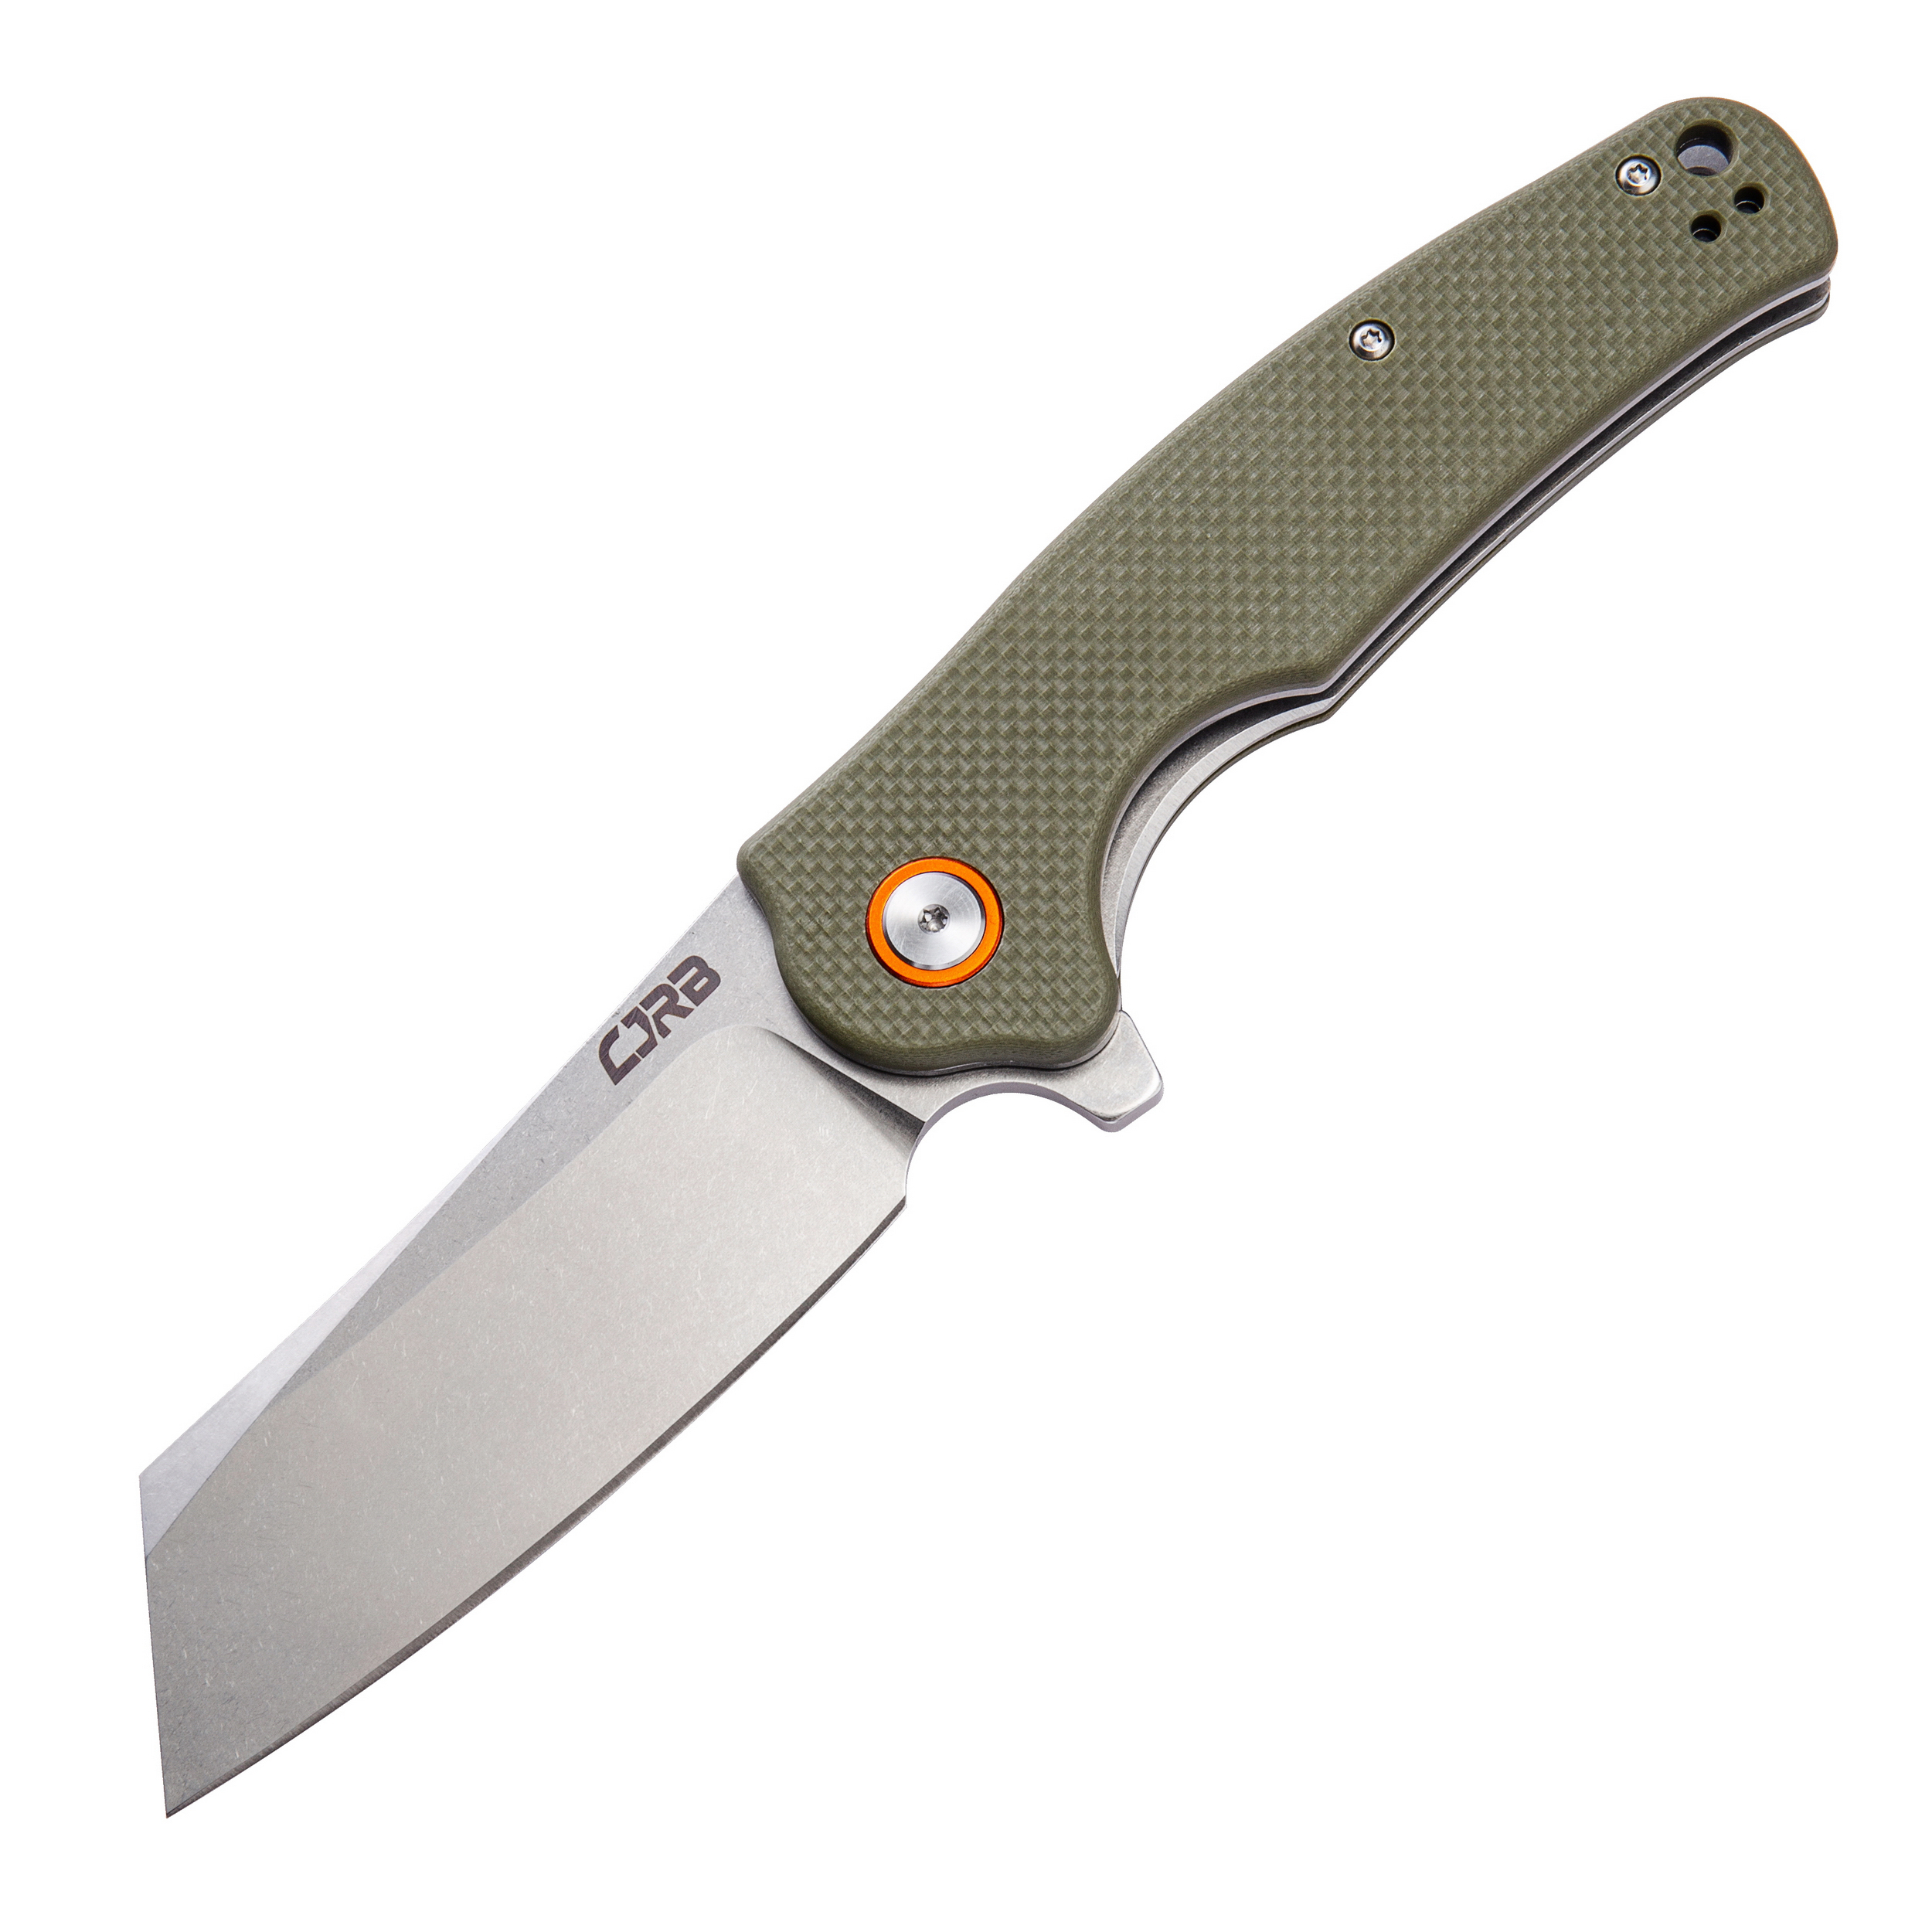 CJRB Crag Folder 3.42 in Blade Green G-10 Handle